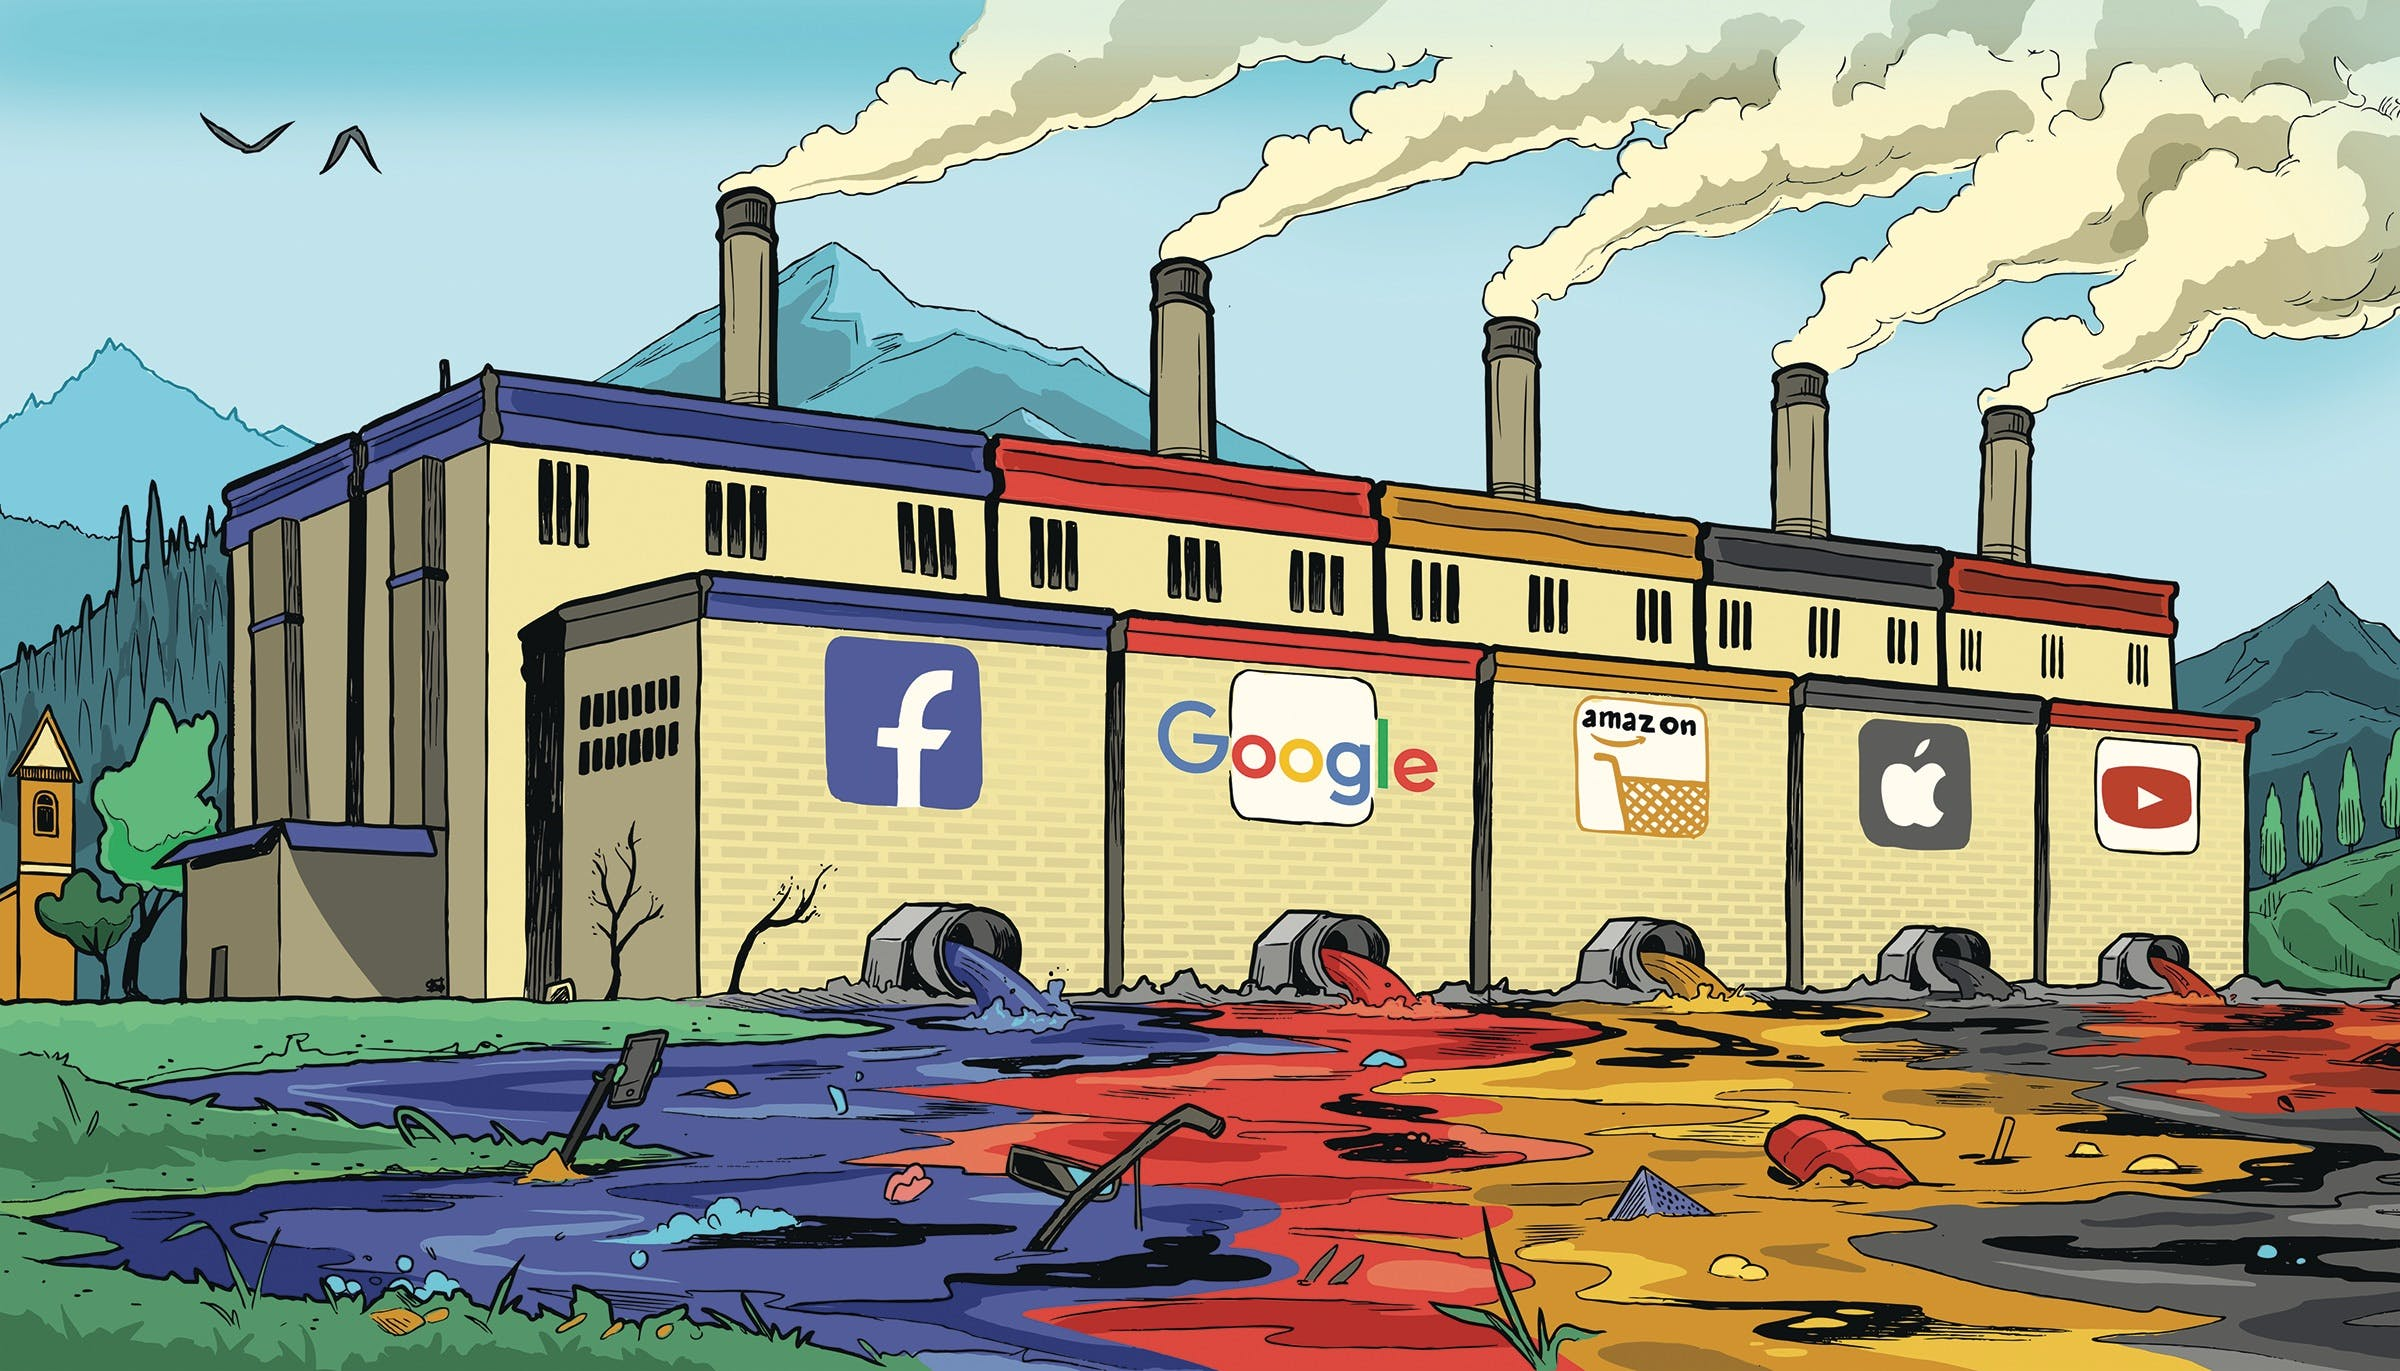 "<p>Read &quot;<a href=""https://washingtonmonthly.com/magazine/january-february-march-2019/the-world-is-choking-on-digital-pollution/"" rel=""noopener noreferrer"" target=""_blank"">The World Is Choking on Digital Pollution</a>&quot; in Washington Monthly.</p>"